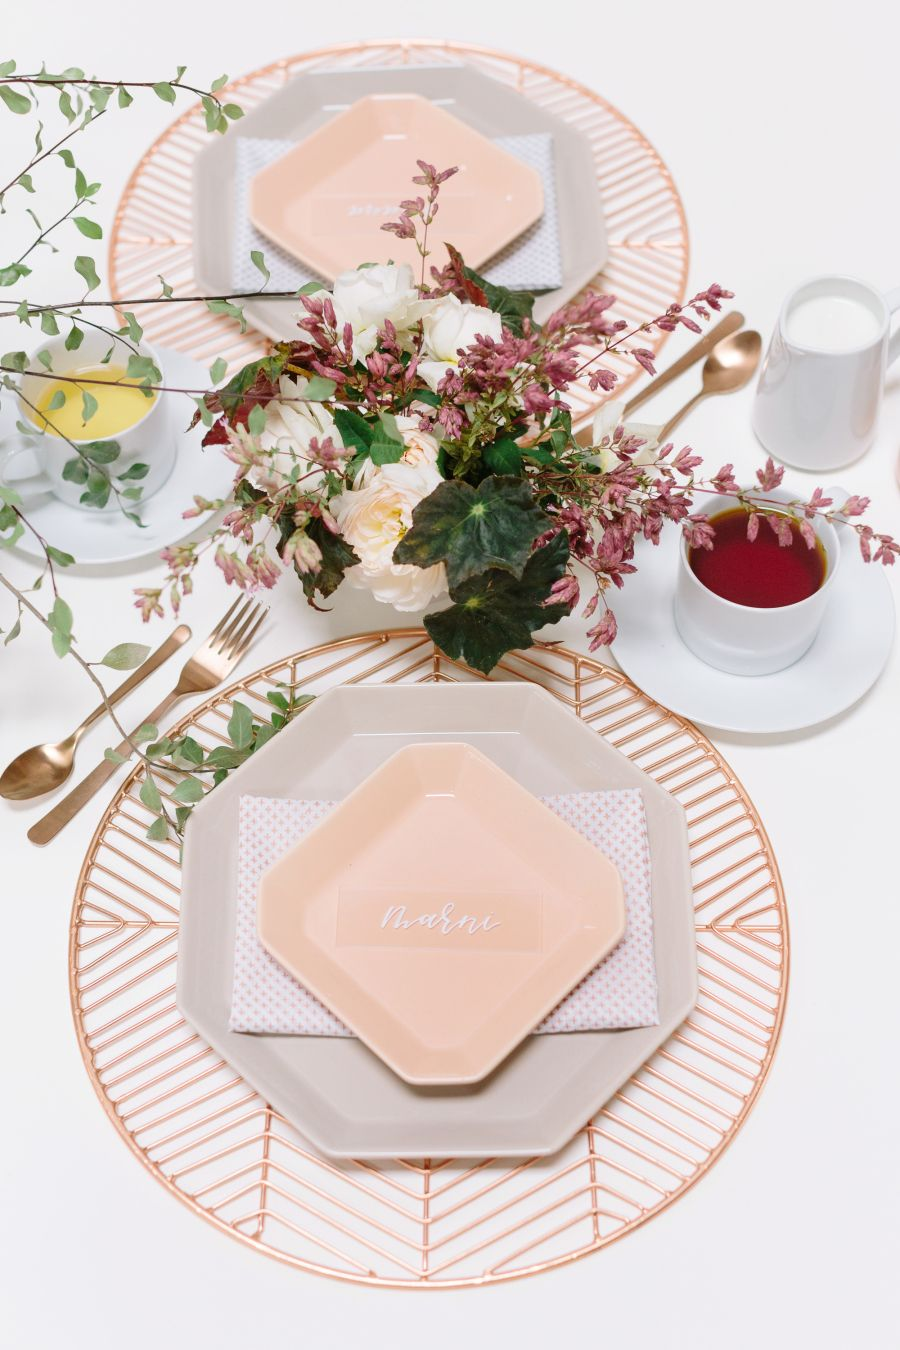 Tablescape Photographer Anna Wu Photography Read More On Smp Http Www Stylemepretty Living 2016 10 03 Tea Time Just Got A Whole Lot Cooler